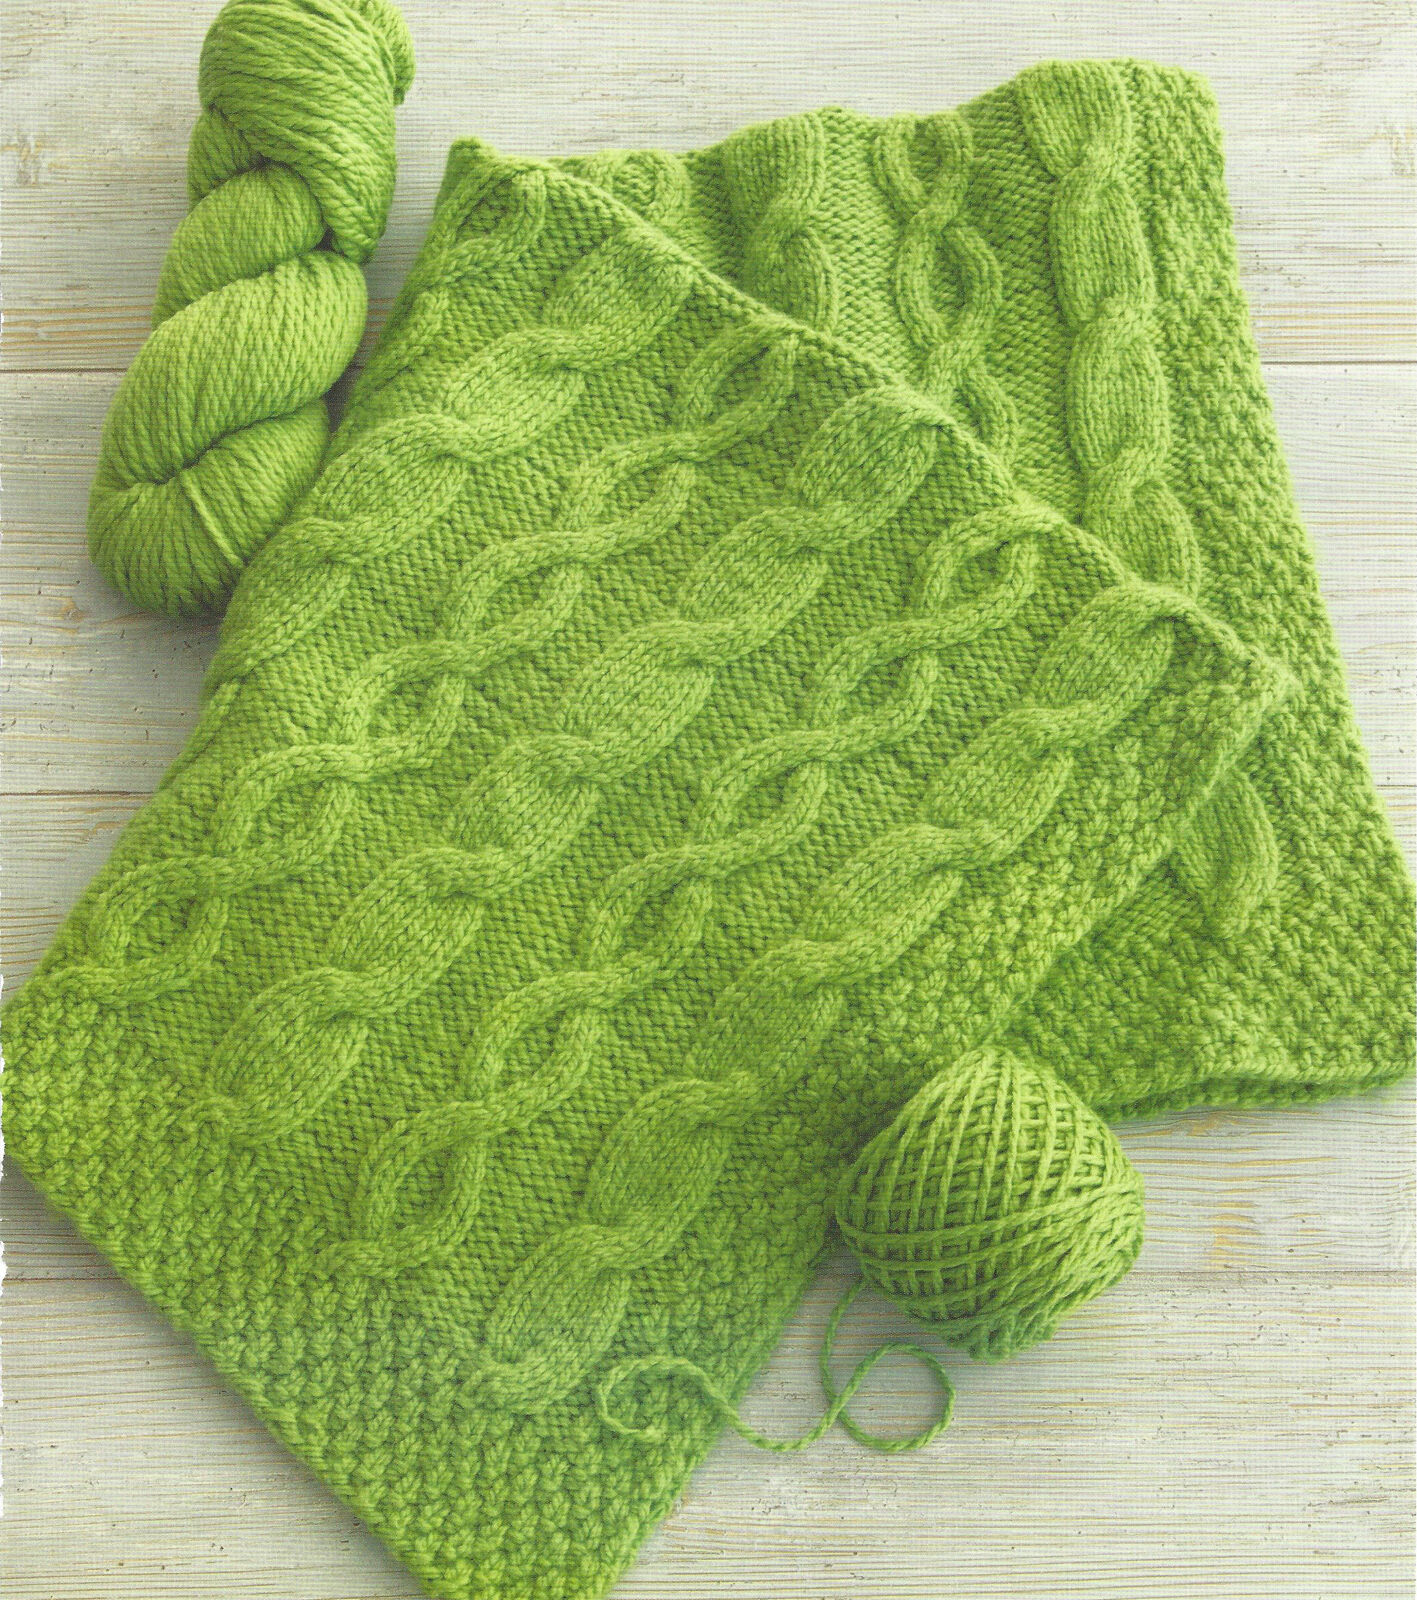 Knitting Pattern Chunky Wool Blanket : Aran Baby Blanket In Chunky Yarn Knitting Pattern (1040)   ?0.99 - PicClick UK